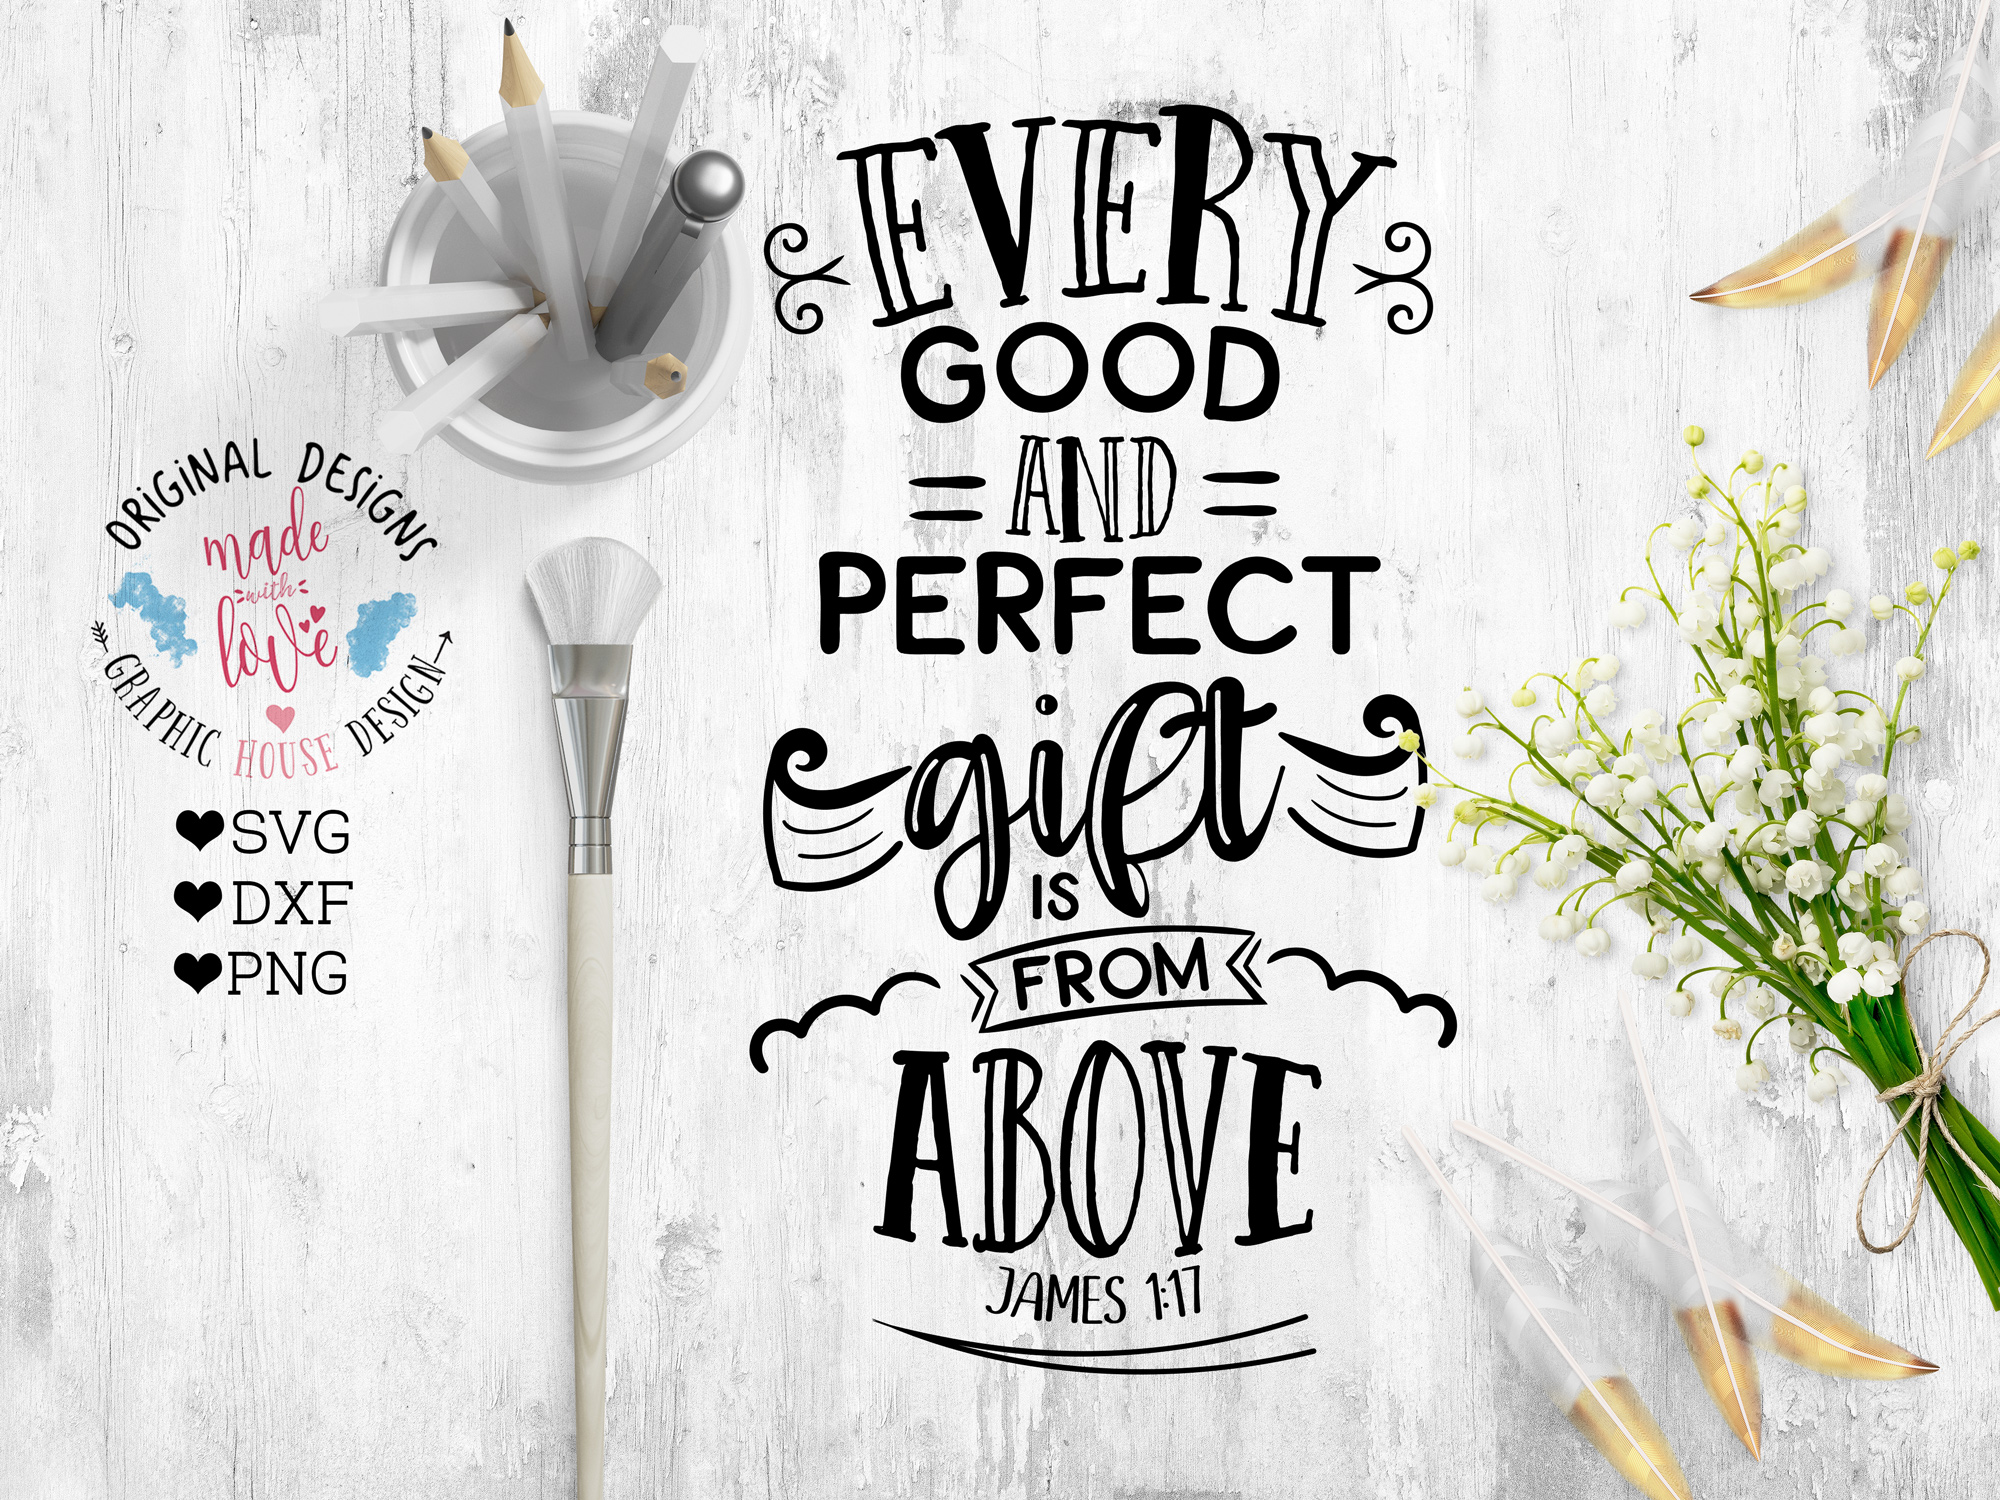 Every good and perfect gift comes from above Cutting File (SVG, DXF, PNG) example image 1